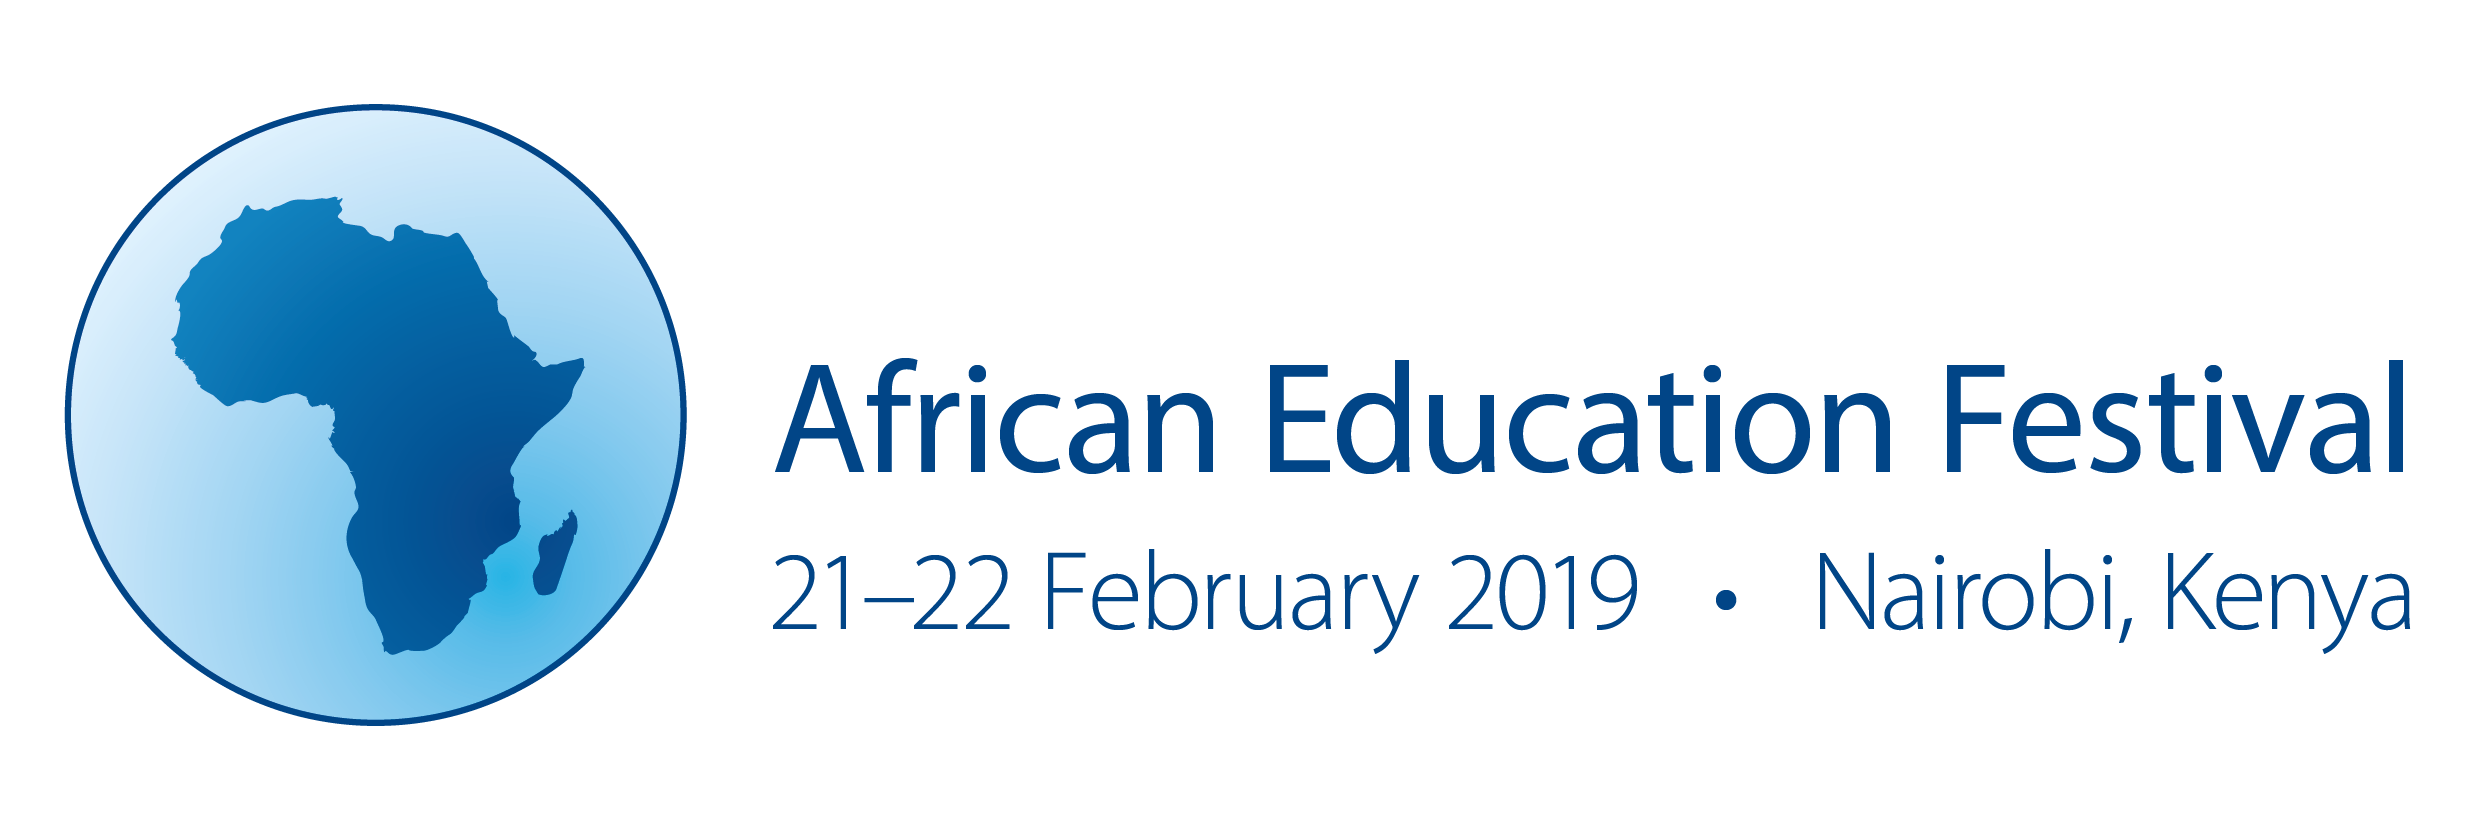 African Education Festival 2019